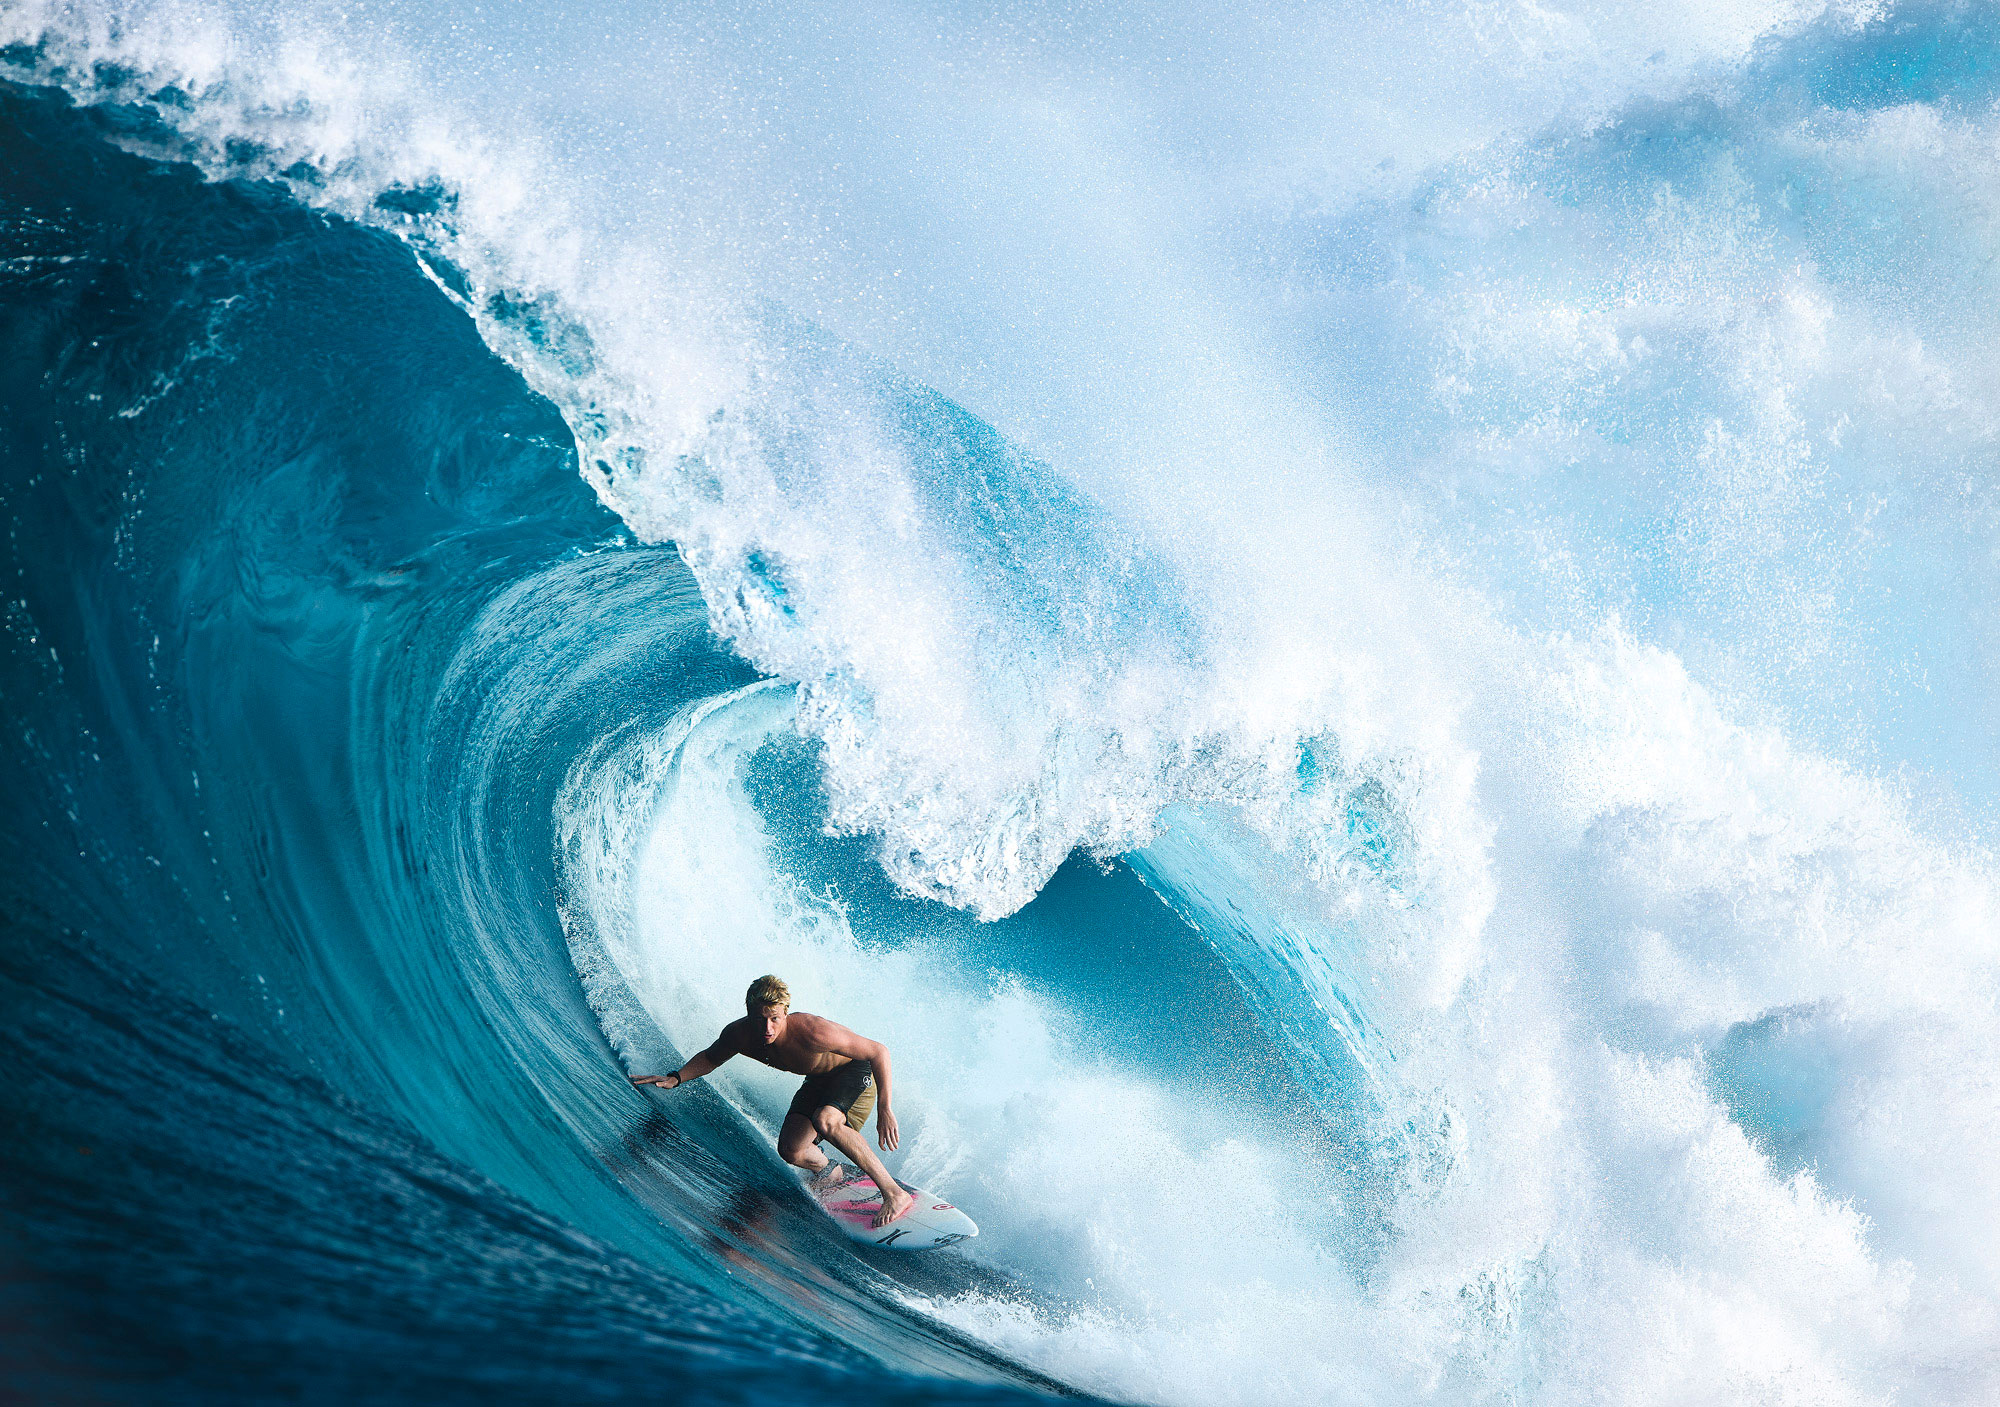 Surfing Desktop Backgrounds Related Keywords & Suggestions ...